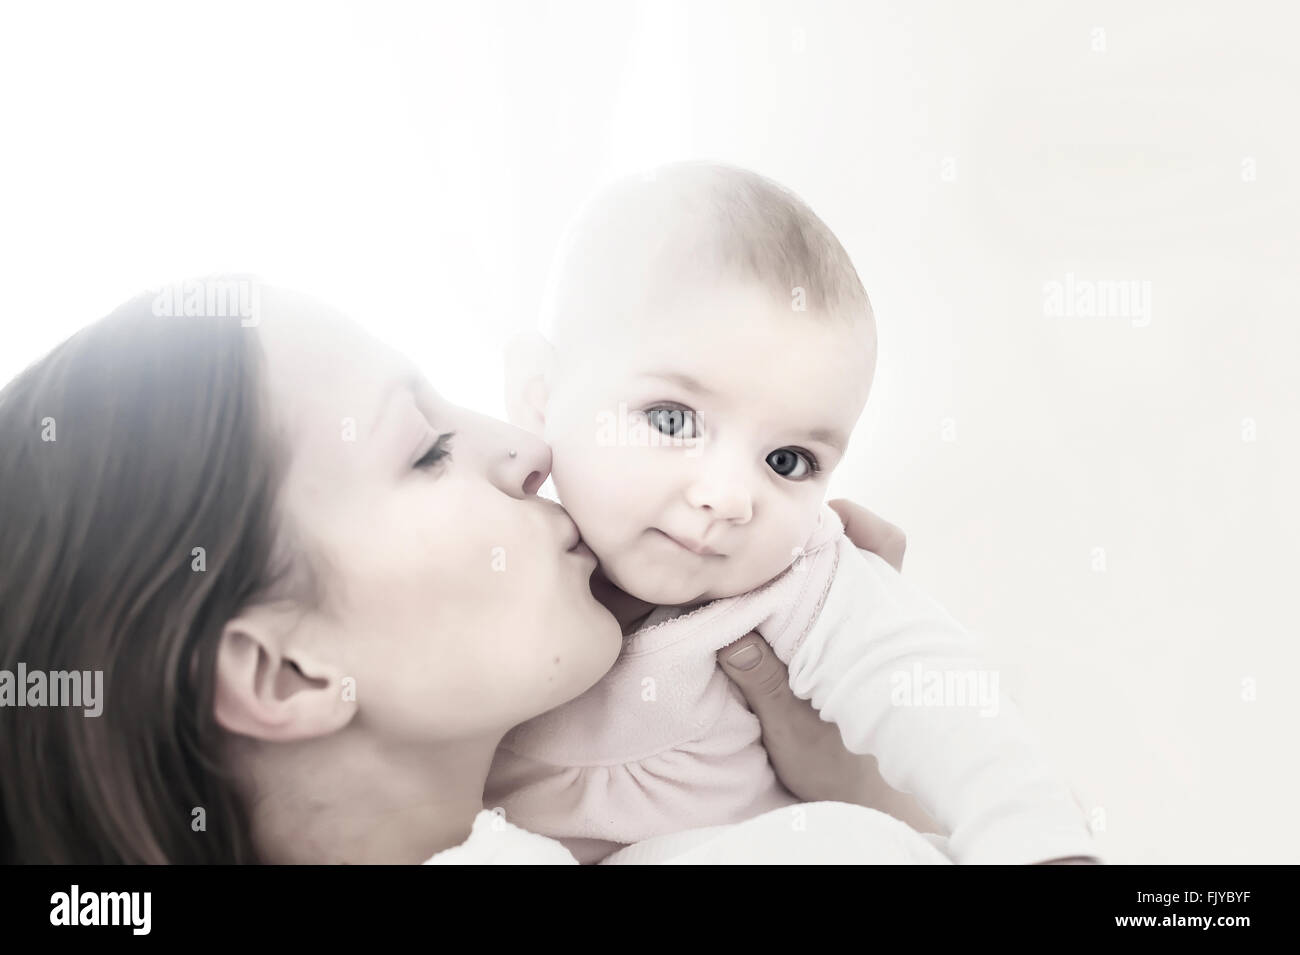 young mum kissing her baby girl in arms - Stock Image